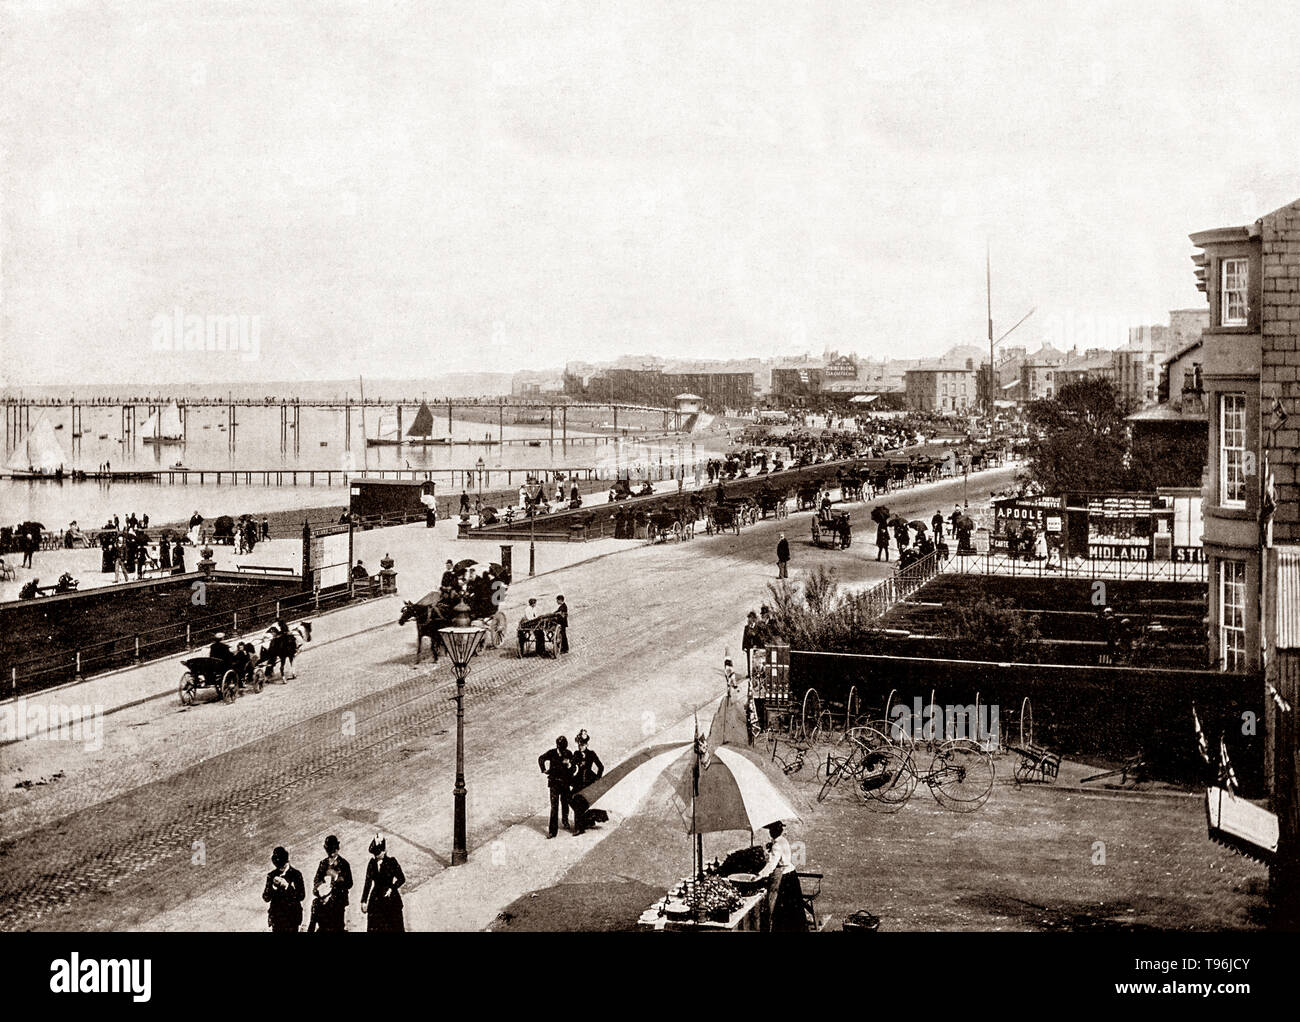 A late 19th Century view of  the beach at Morecambe, a coastal town on Morecambe Bay in Lancashire, England. While the resort of Blackpool attracted holiday-makers predominantly from the Lancashire mill towns, Morecambe had more visitors from Yorkshire (due to its railway connection) and Scotland. Mill workers from Bradford and further afield in West Yorkshire would holiday at Morecambe, with some retiring there. - Stock Image